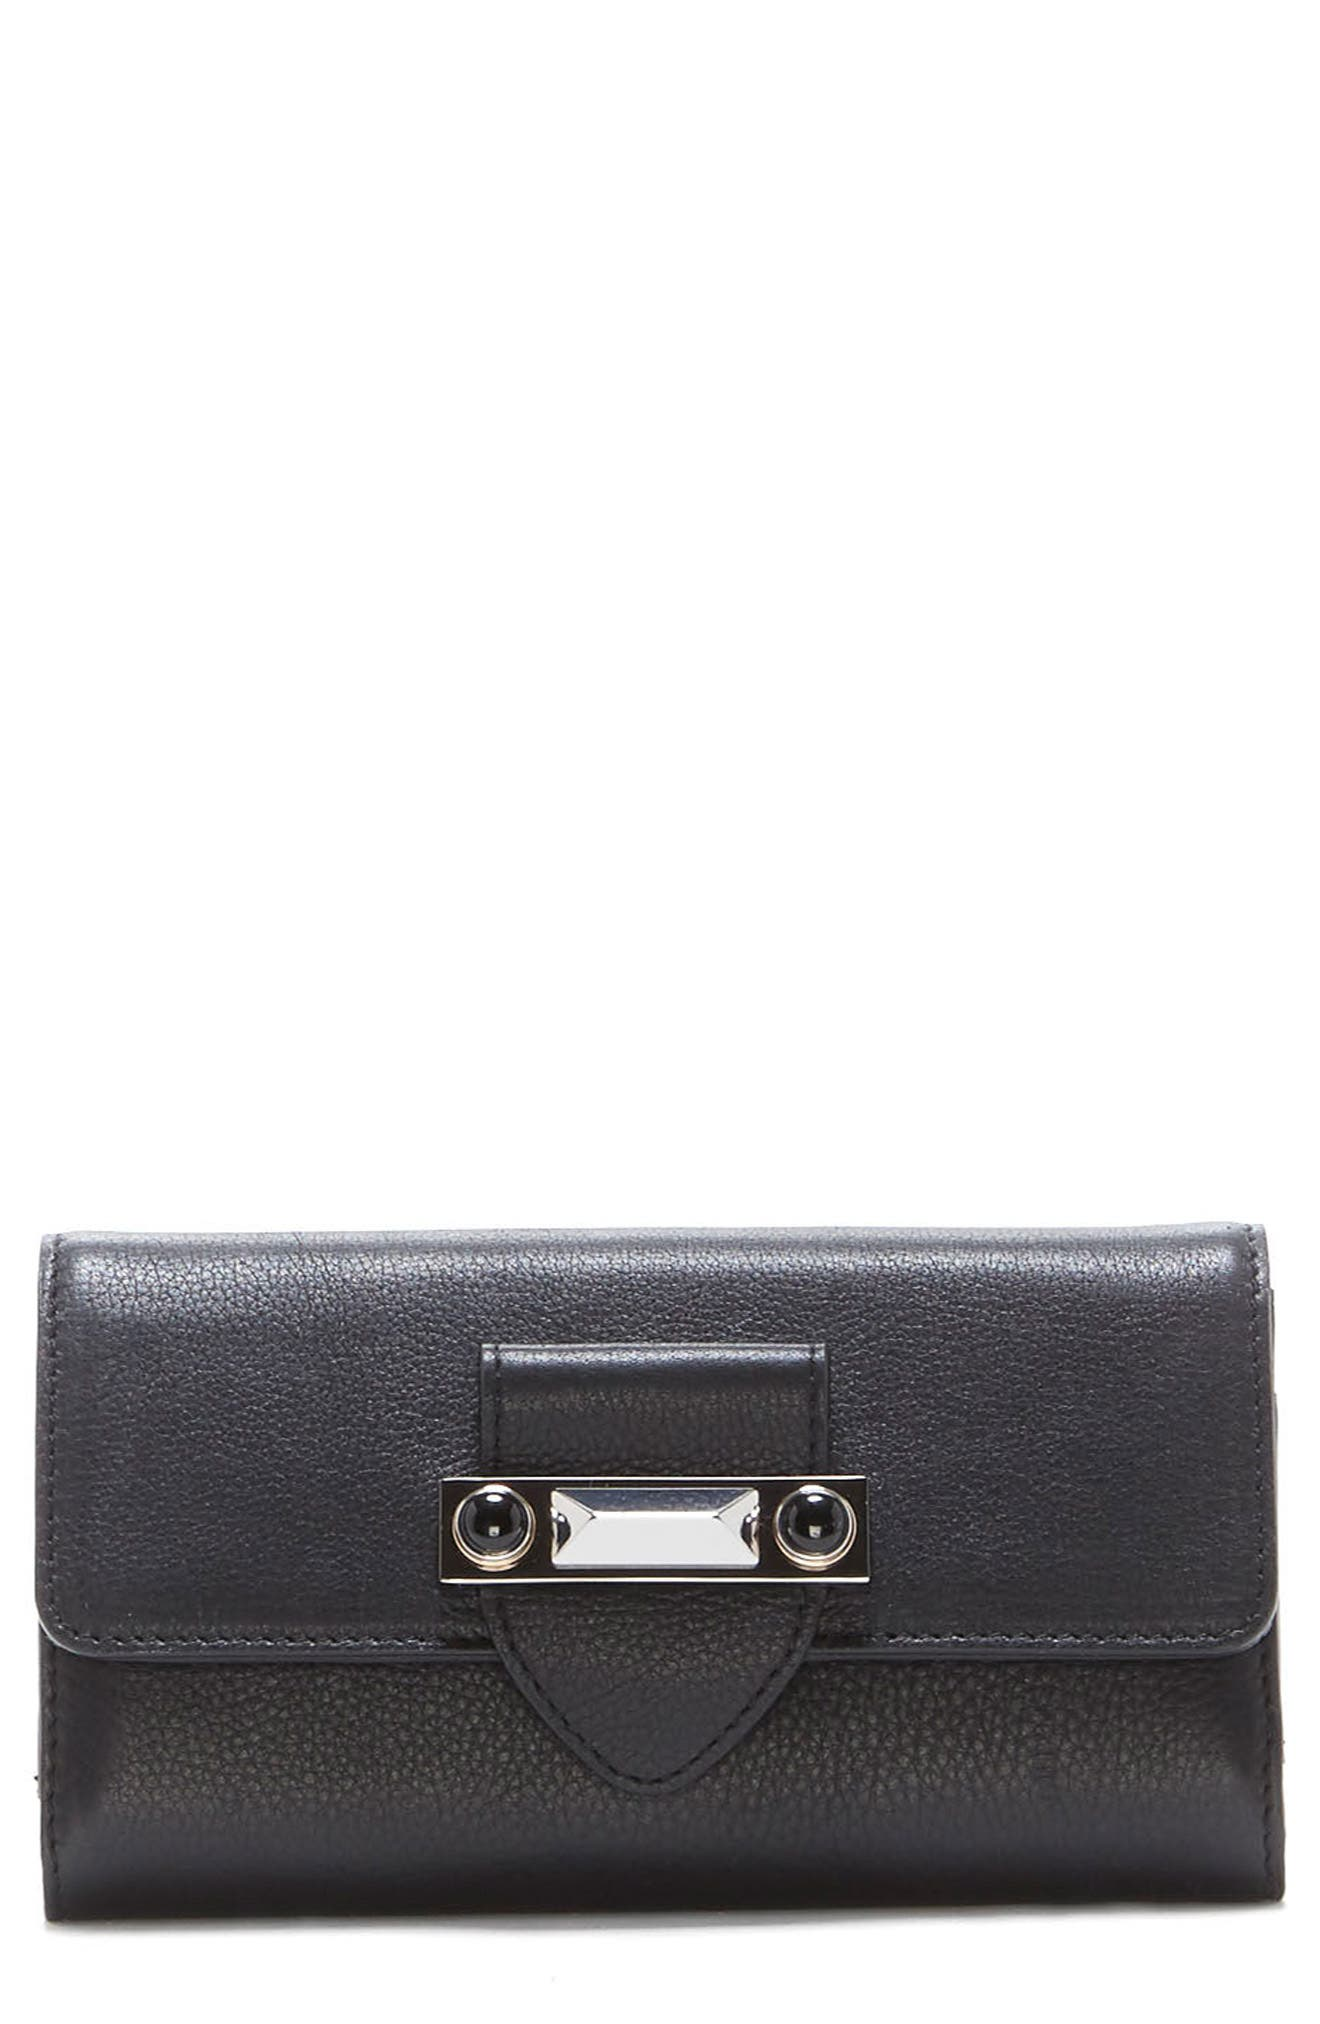 Alternate Image 1 Selected - Vince Camuto Bitty Leather Wallet